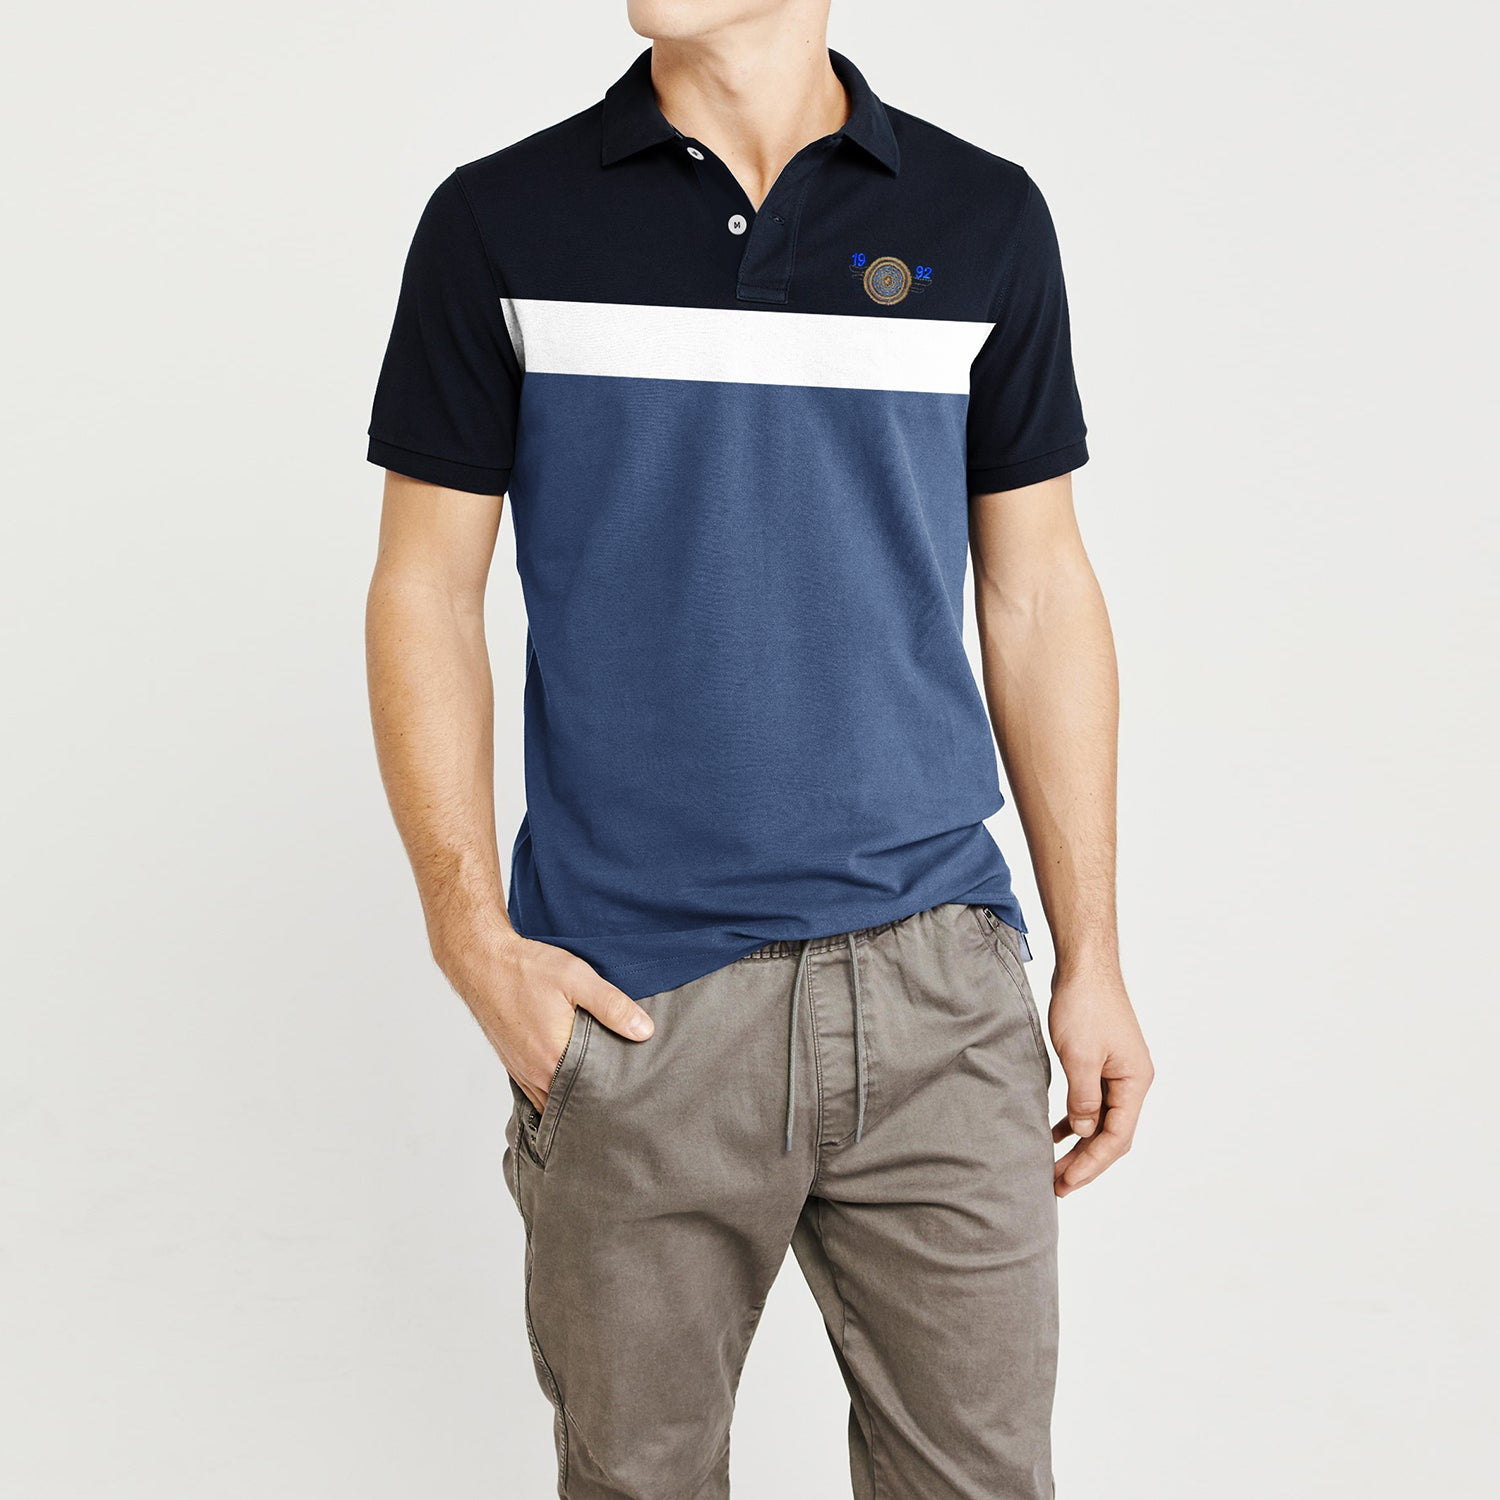 American Eagle Cut Label Short Sleeve P.Q Polo Shirt For Men-Dark Navy-White-Sky Blue-Striped-NA7977